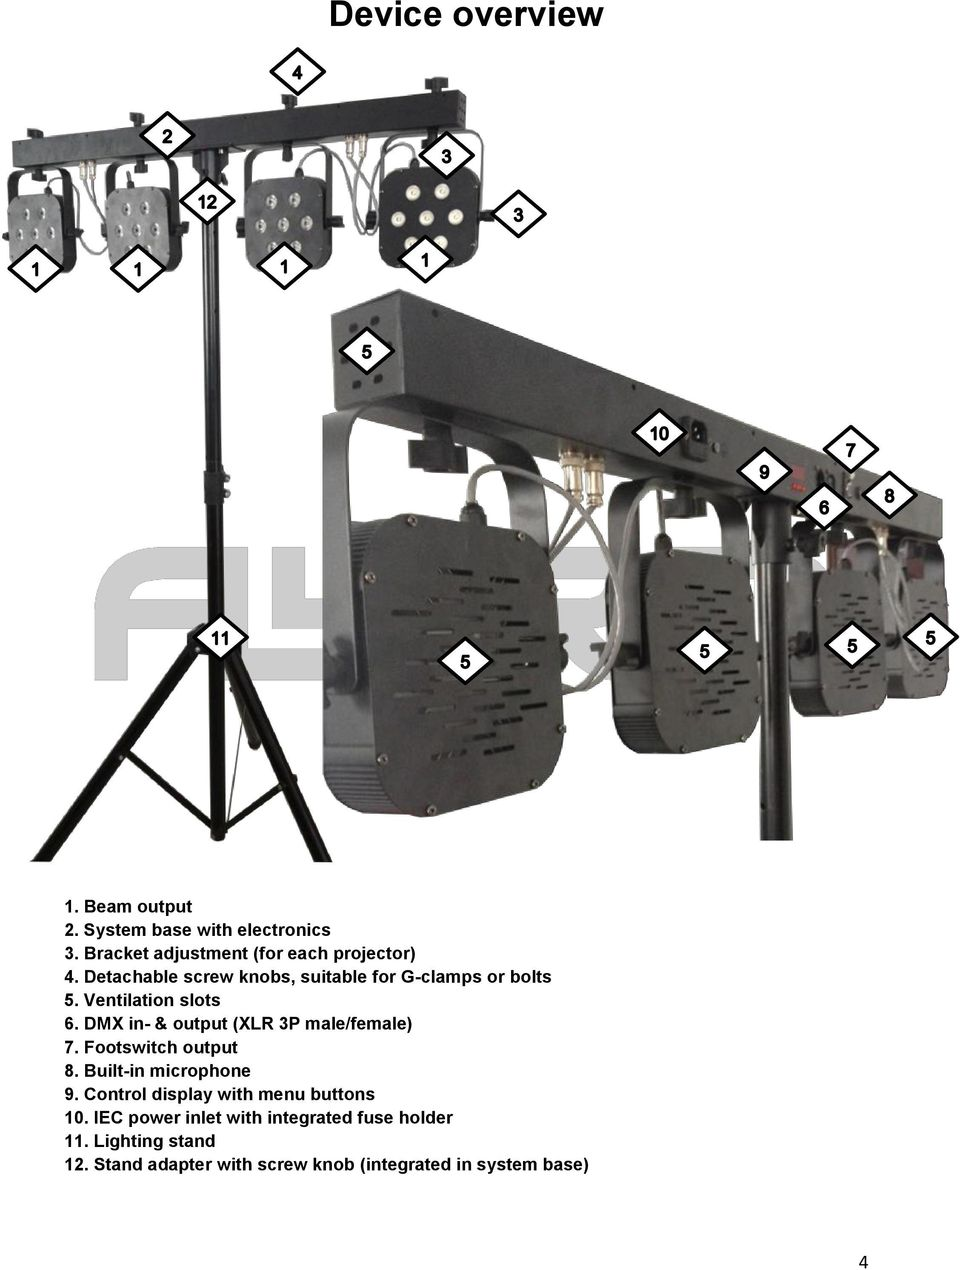 DMX in- & output (XLR 3P male/female) 7. Footswitch output 8. Built-in microphone 9.